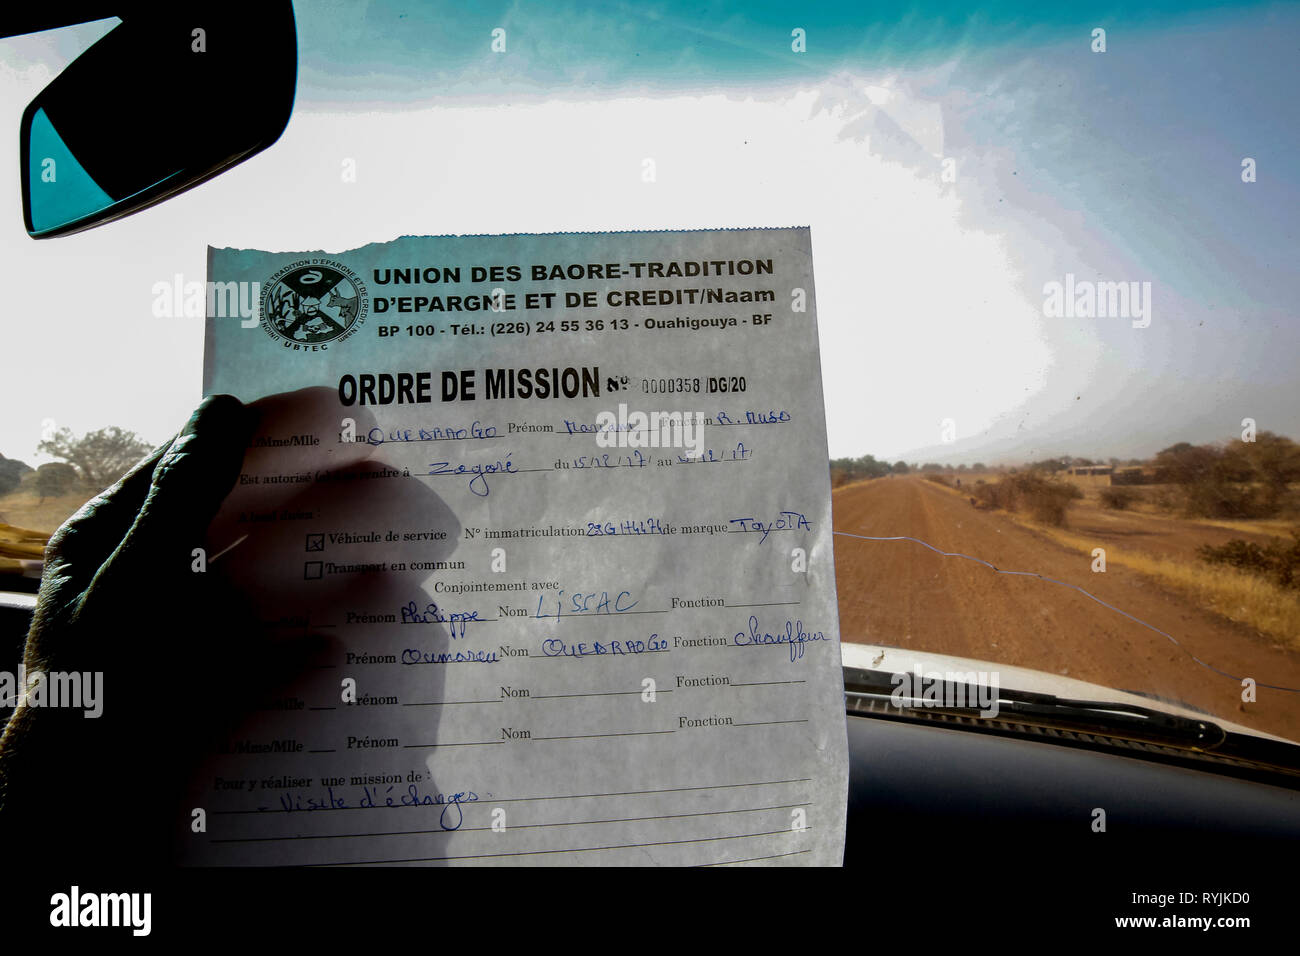 Document for traveling on an unsafe road in Burkina Faso. - Stock Image